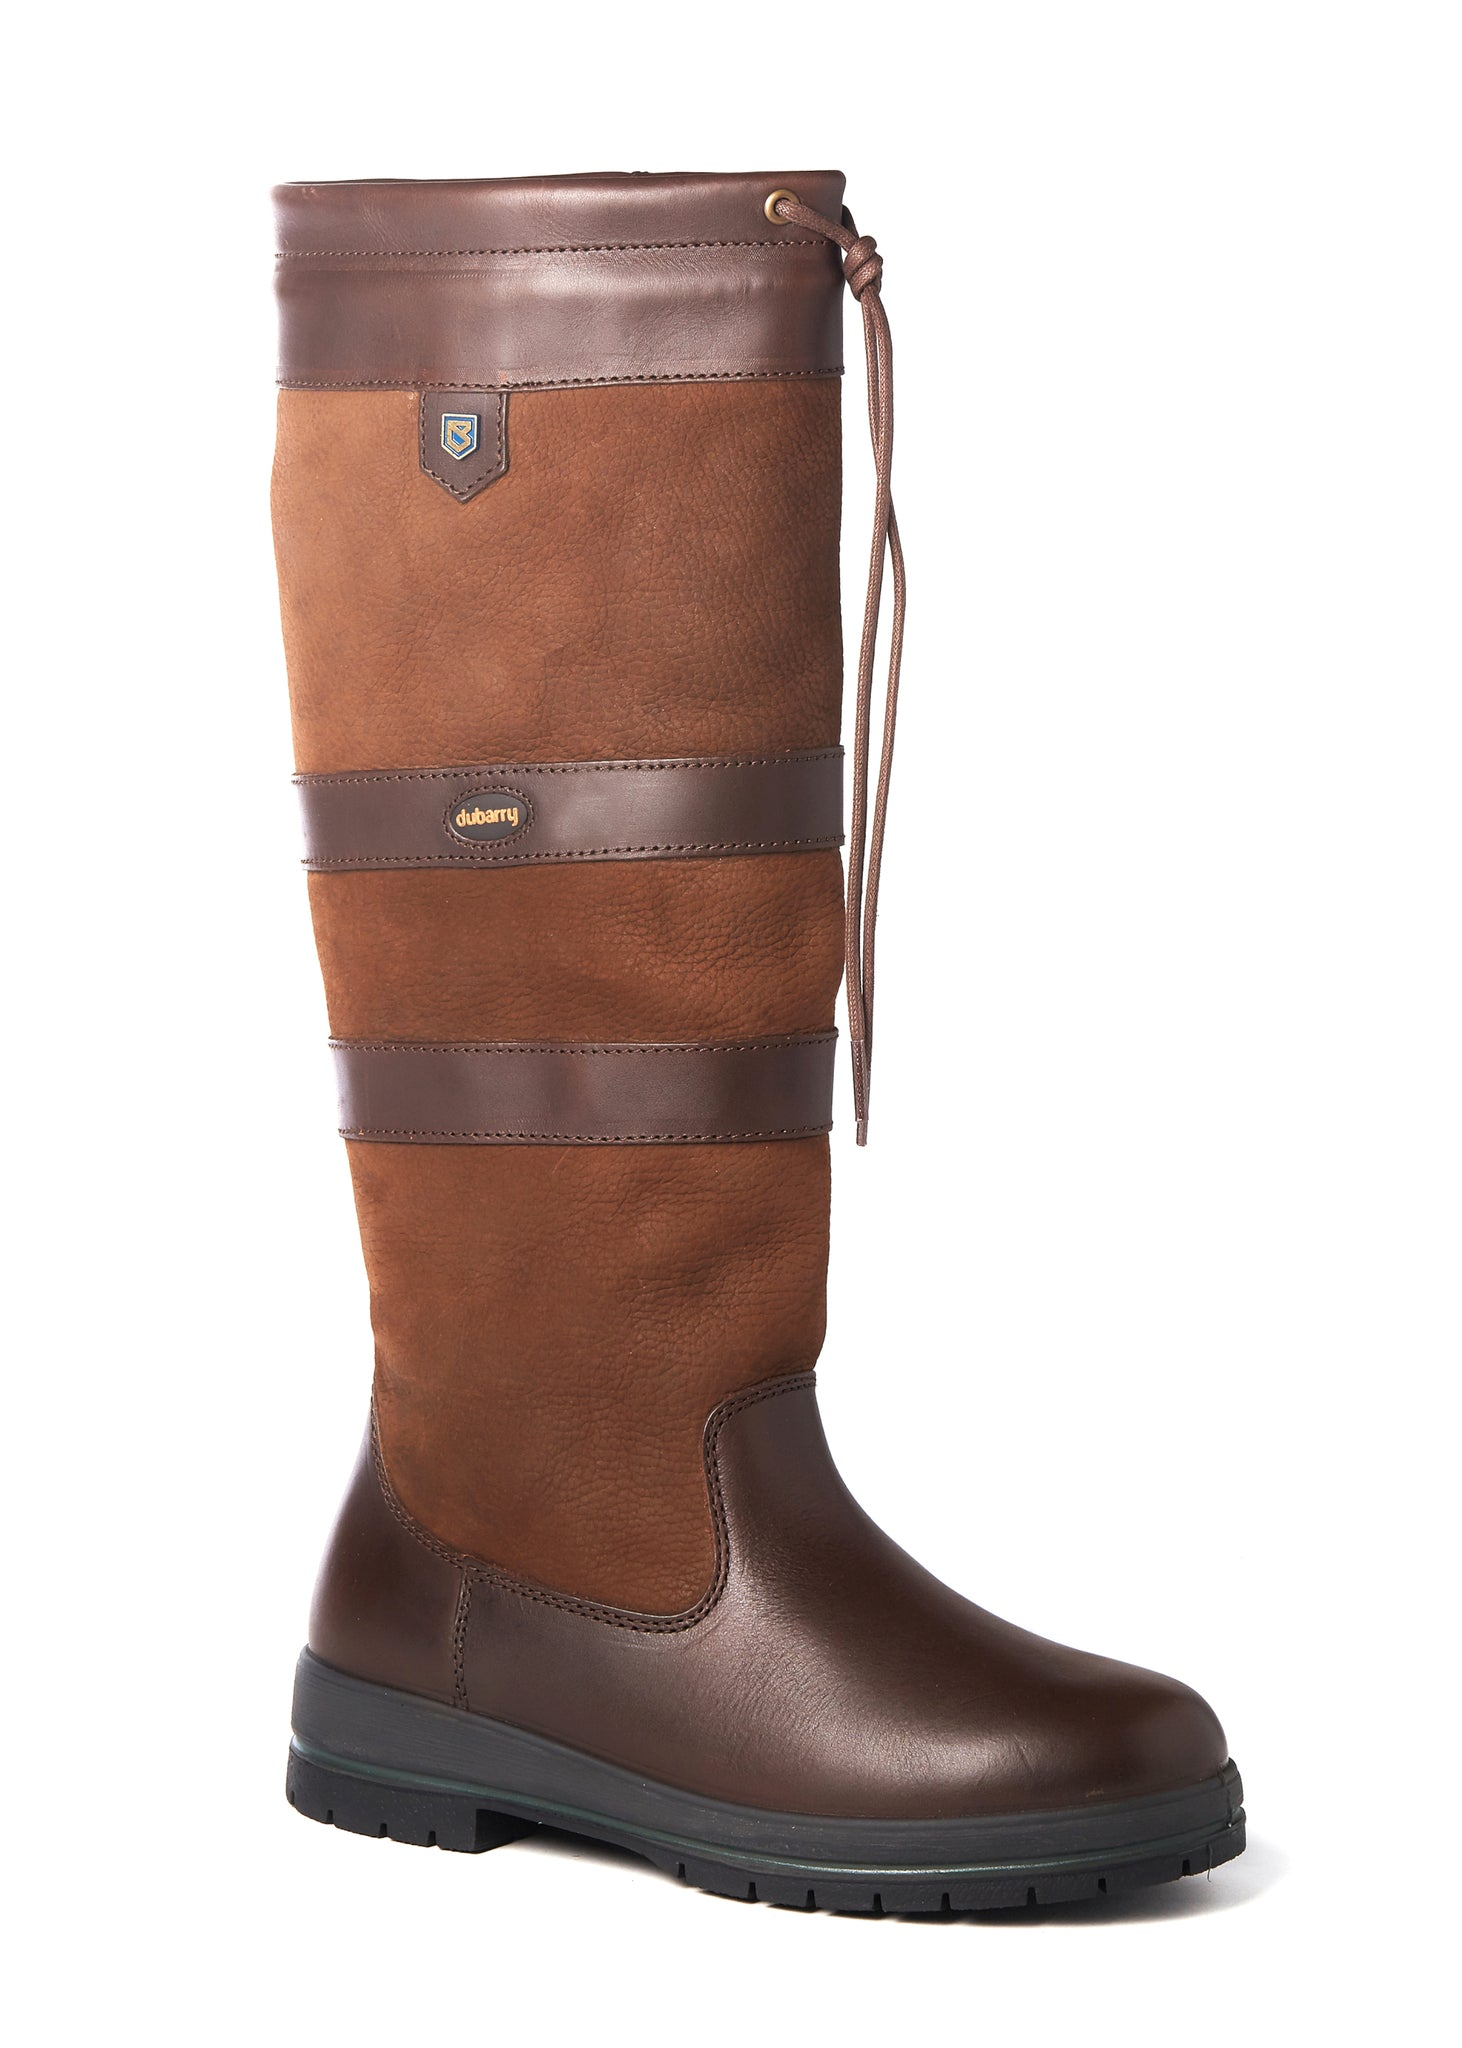 Galway Country Boot - Walnut